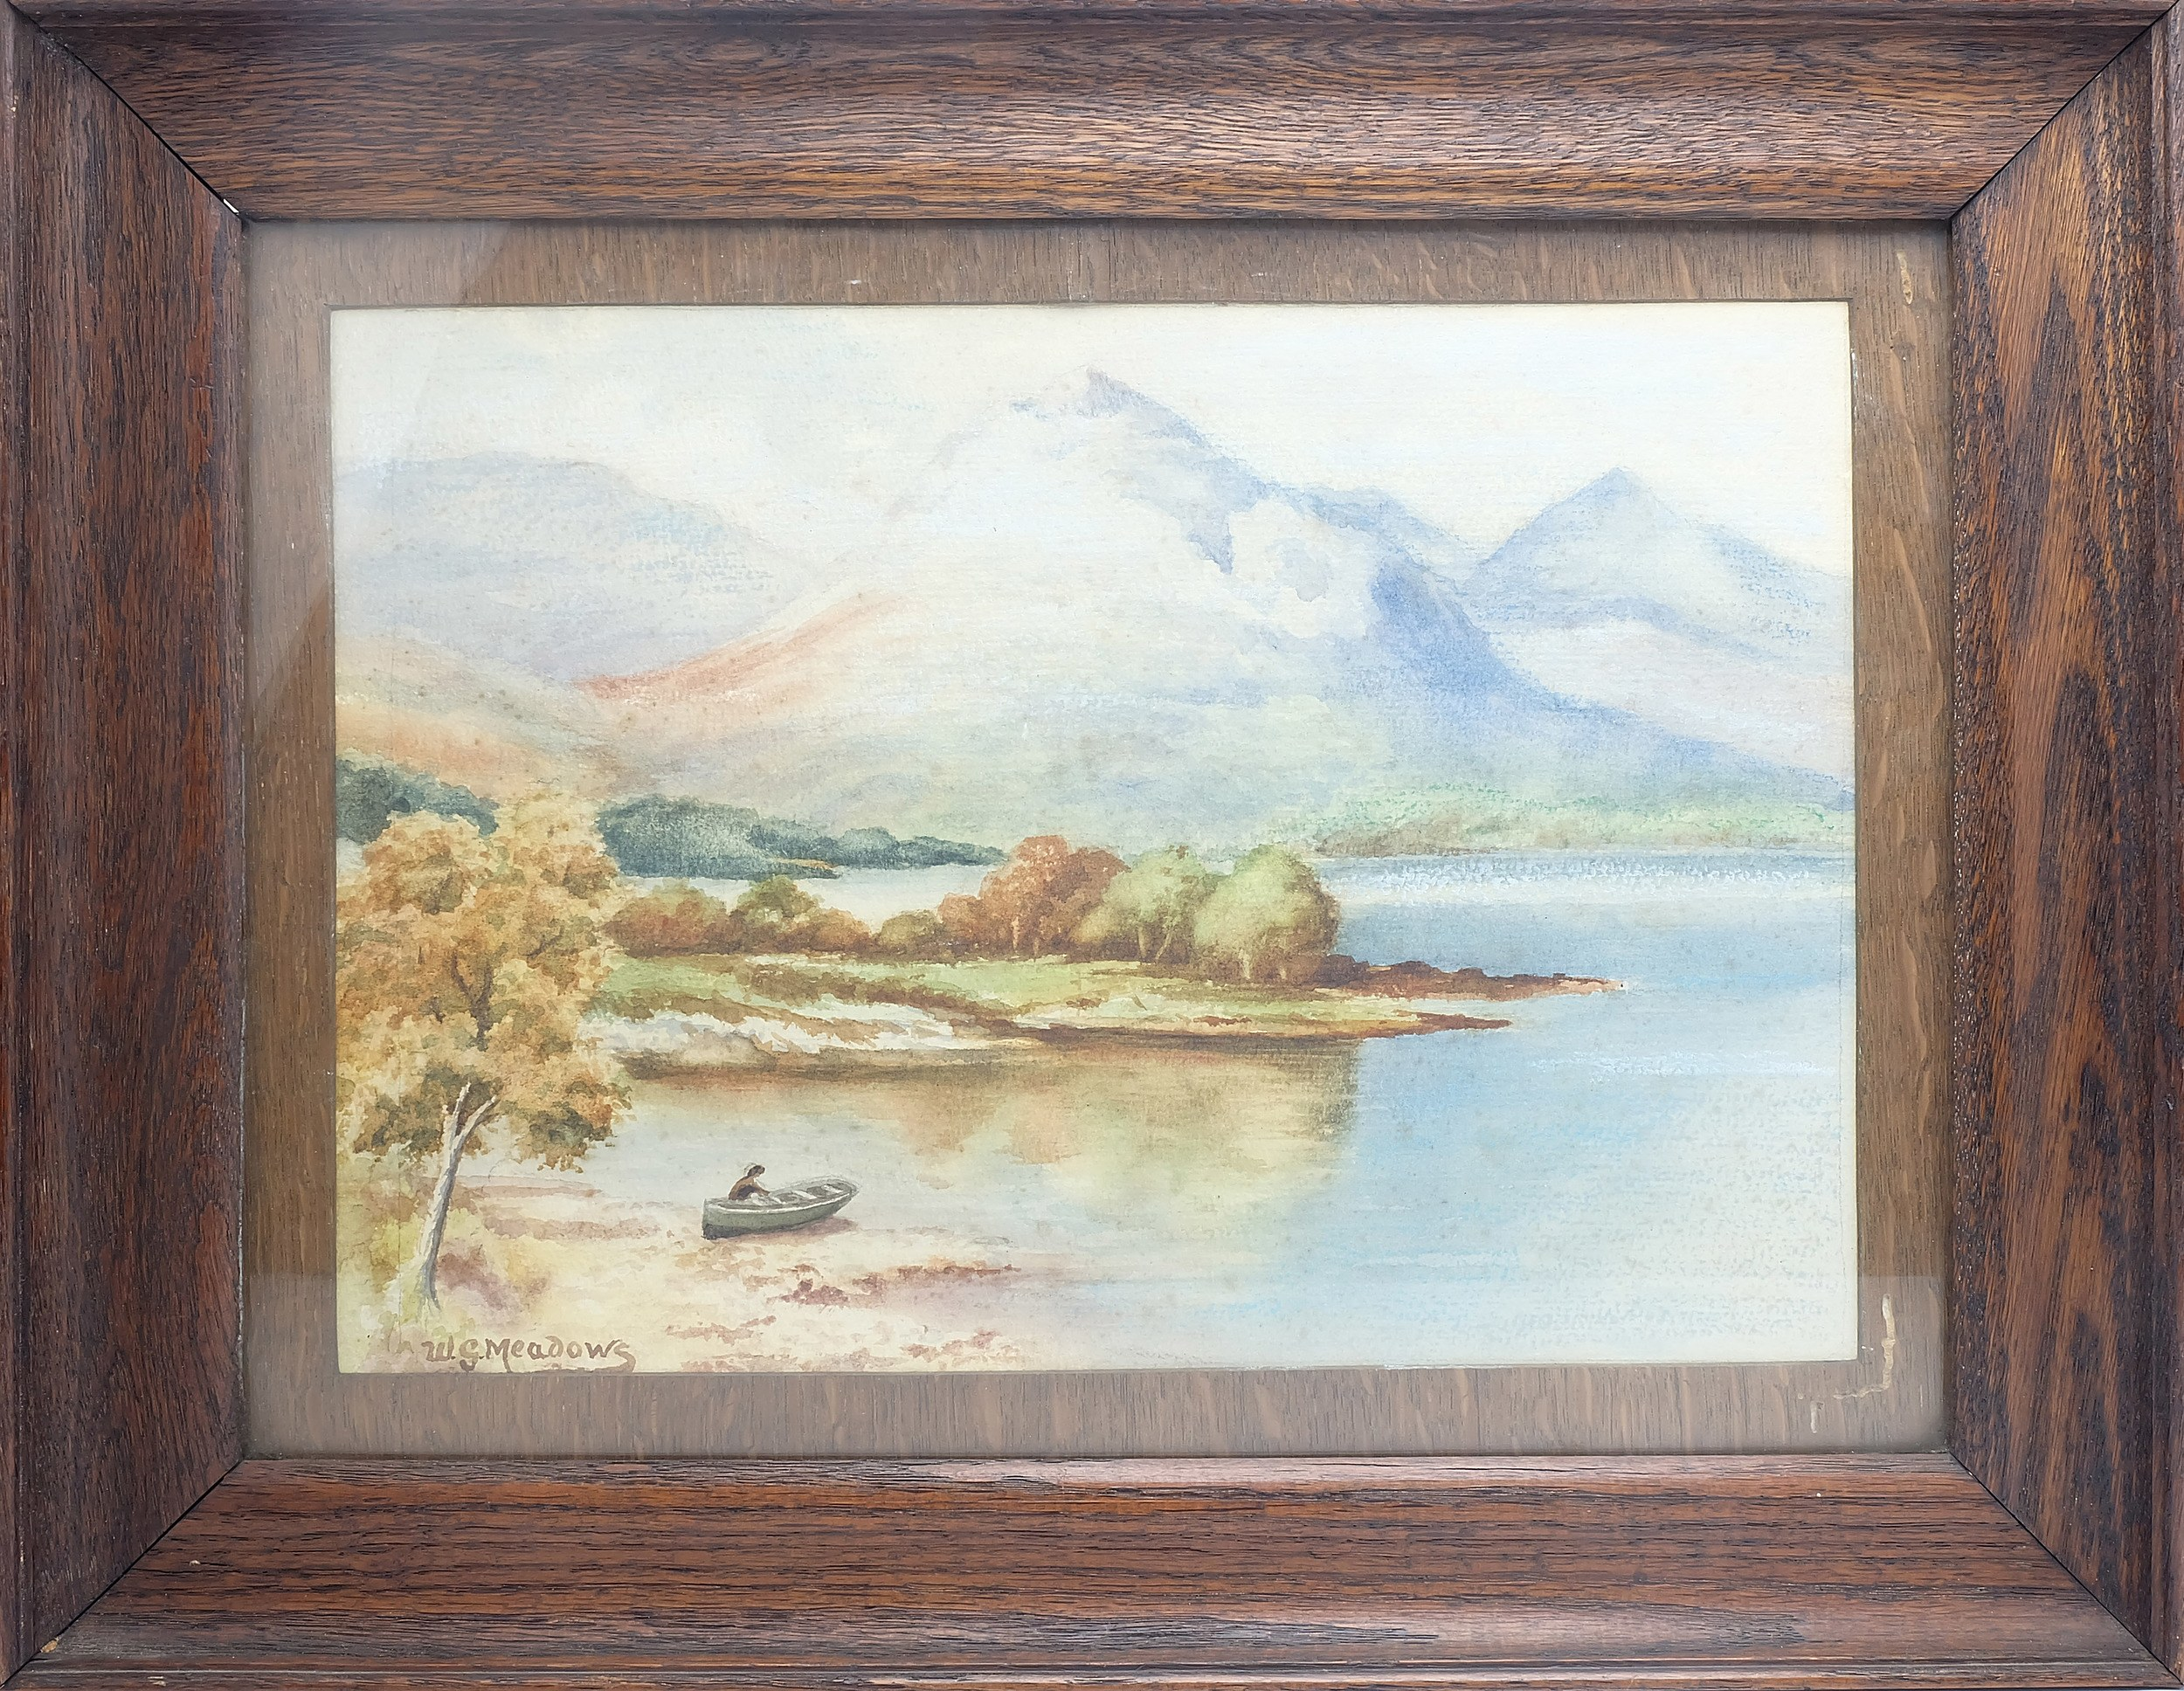 'William G Meadows (English 1825-1901) Loch Awe Watercolour'